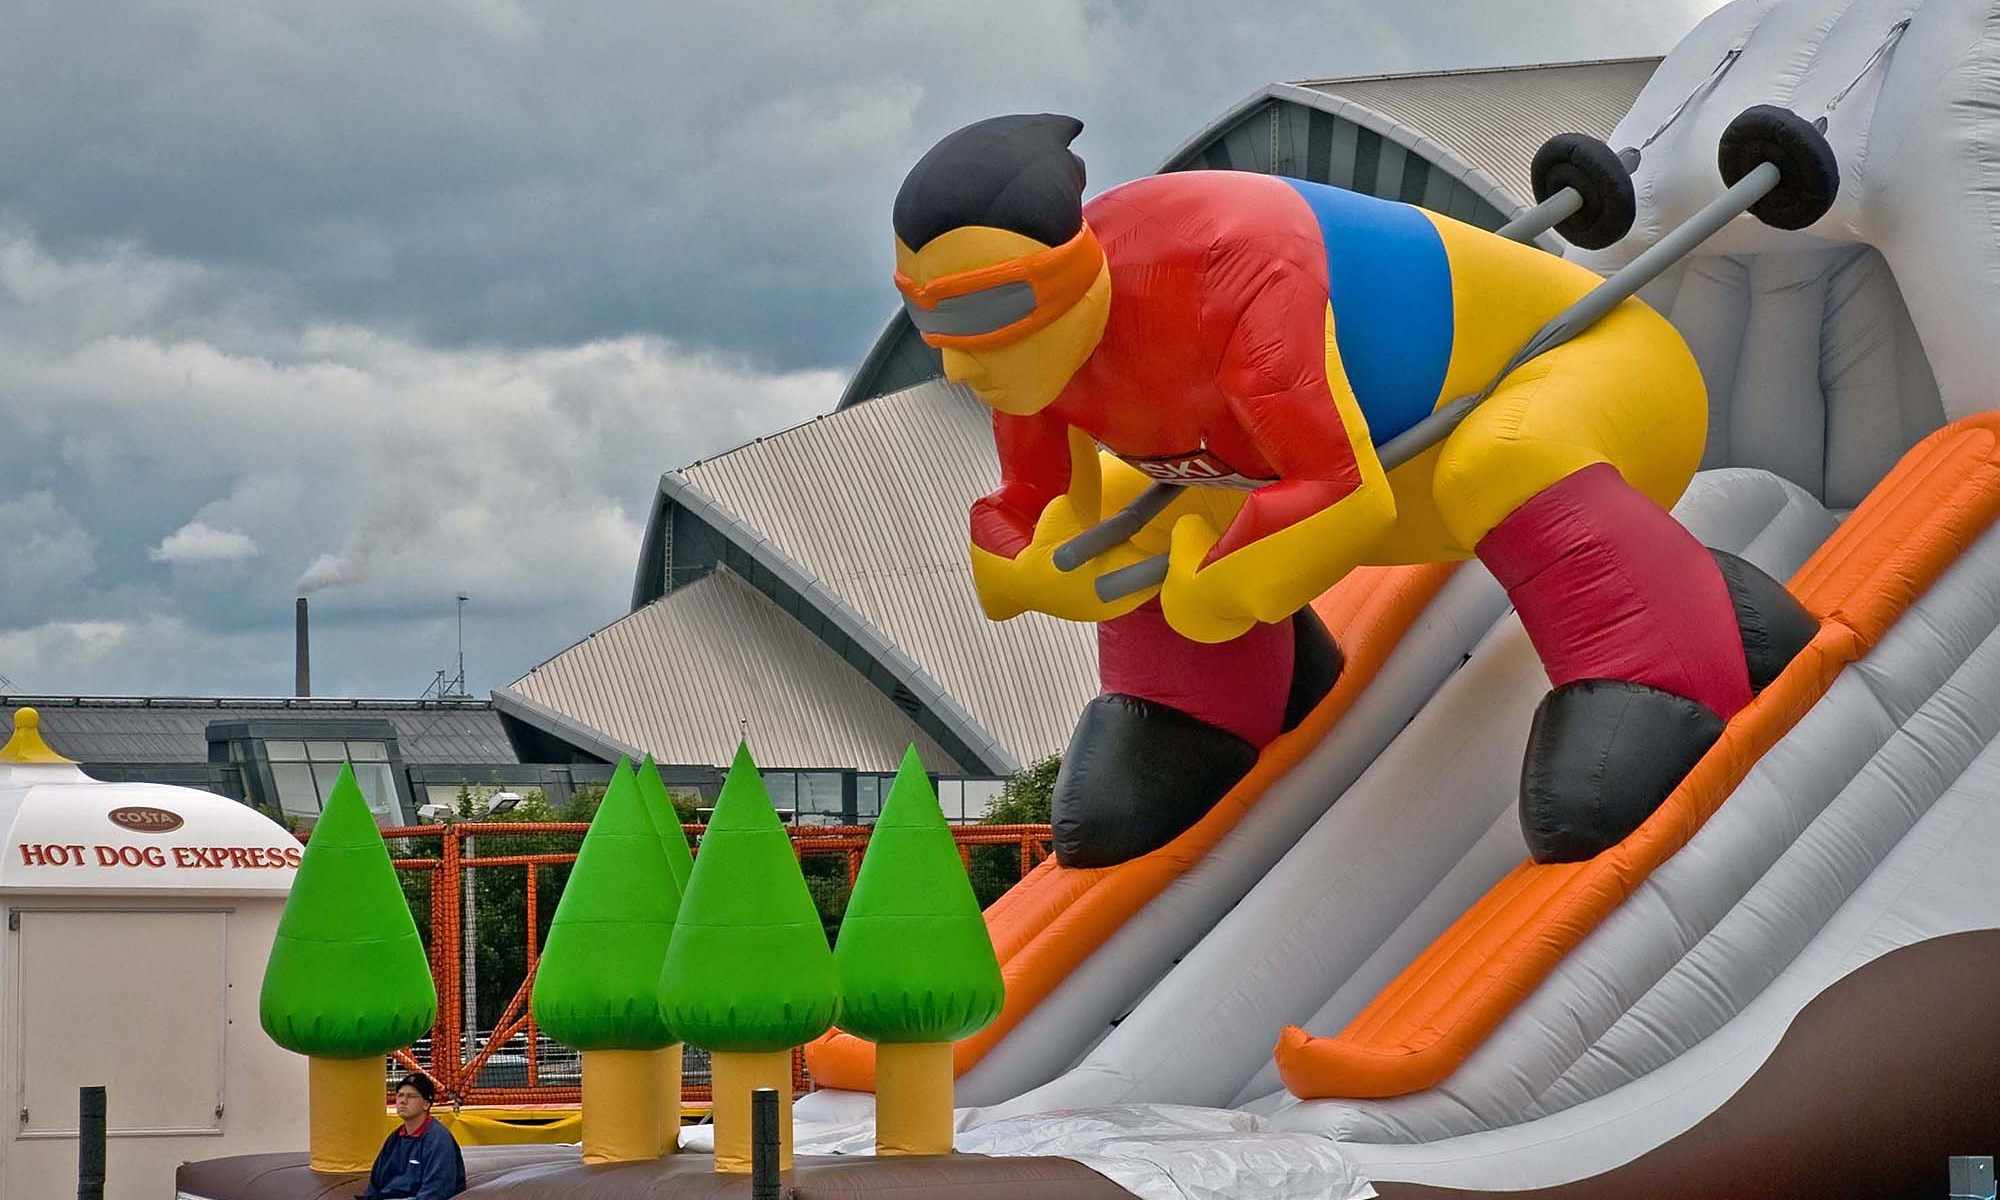 Inflatable Skier Slide outside Glasgow Science Centre